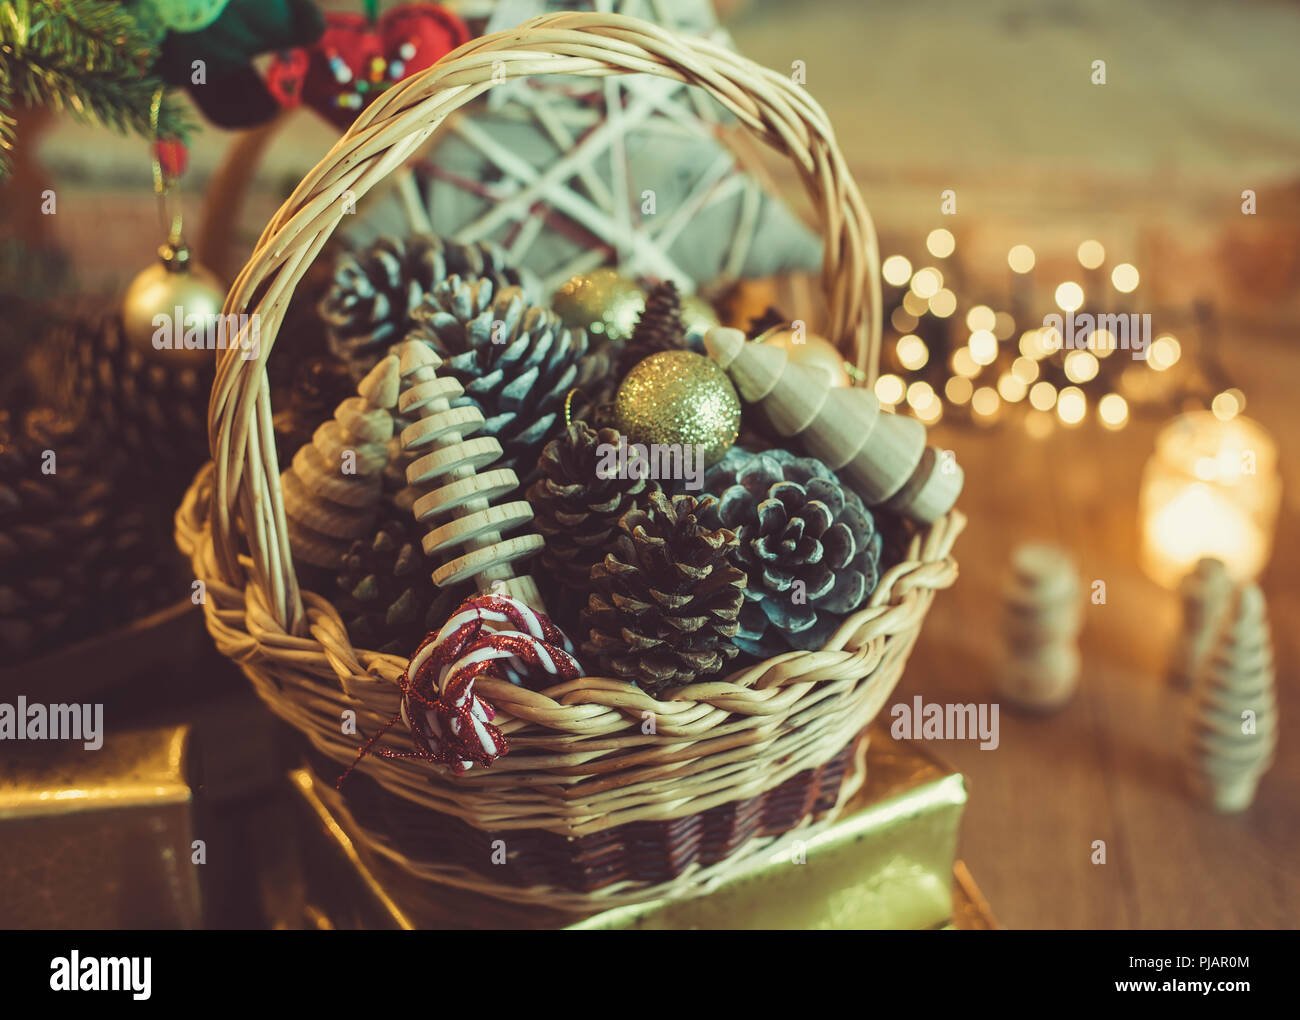 christmas decorations in the basket in front of fireplace with candles and baubles handmade wooden toys made on wood lathe felt ornaments baubles